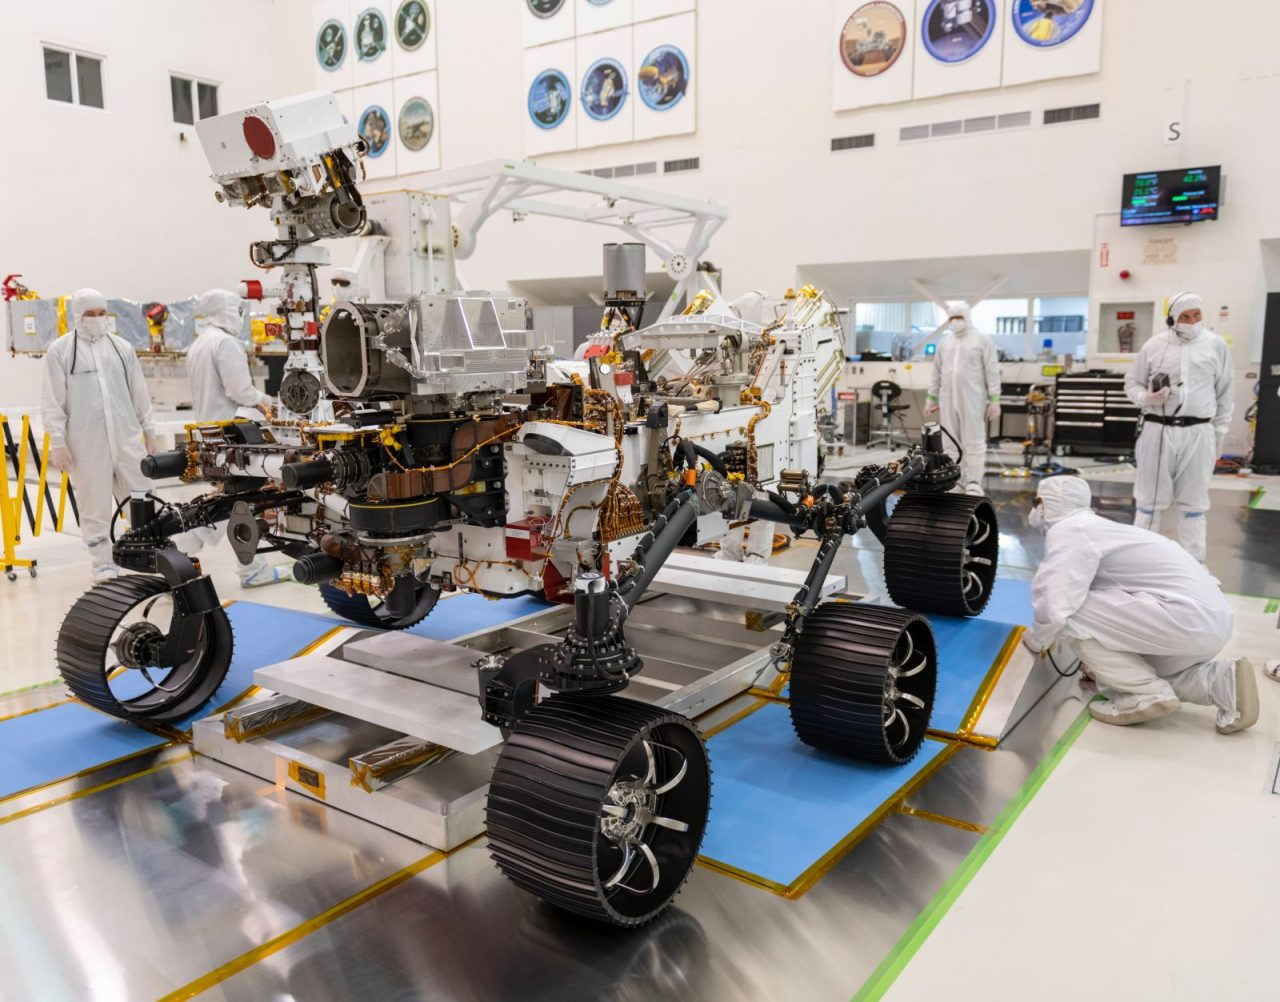 In a clean room at NASA's Jet Propulsion Laboratory in Pasadena, California, engineers observed the first driving test for NASA's Mars 2020 rover on Dec. 17, 2019. Photo Credit: NASA/JPL-Caltech